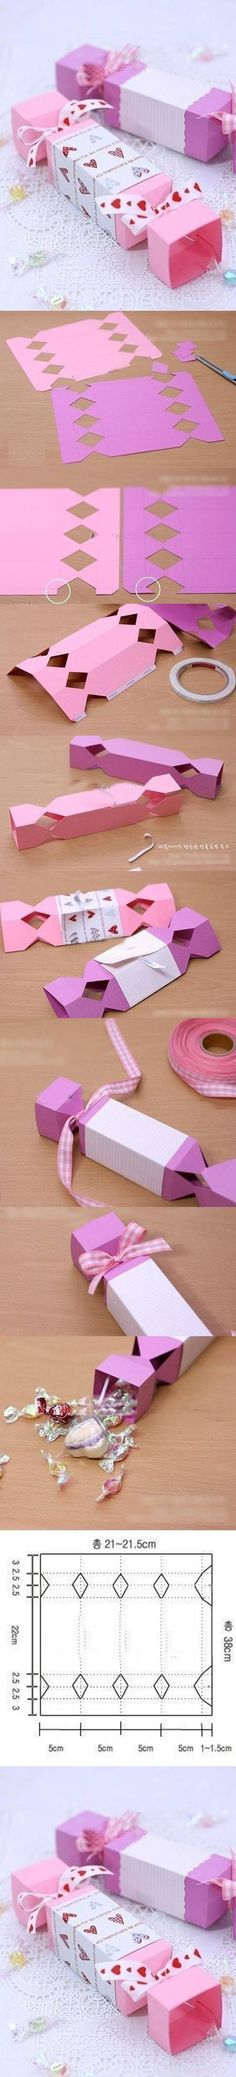 DIY Cute Candy Gift Box DIY Projects | UsefulDIY.com Follow Us on Facebook ==> http://www.facebook.com/UsefulDiy